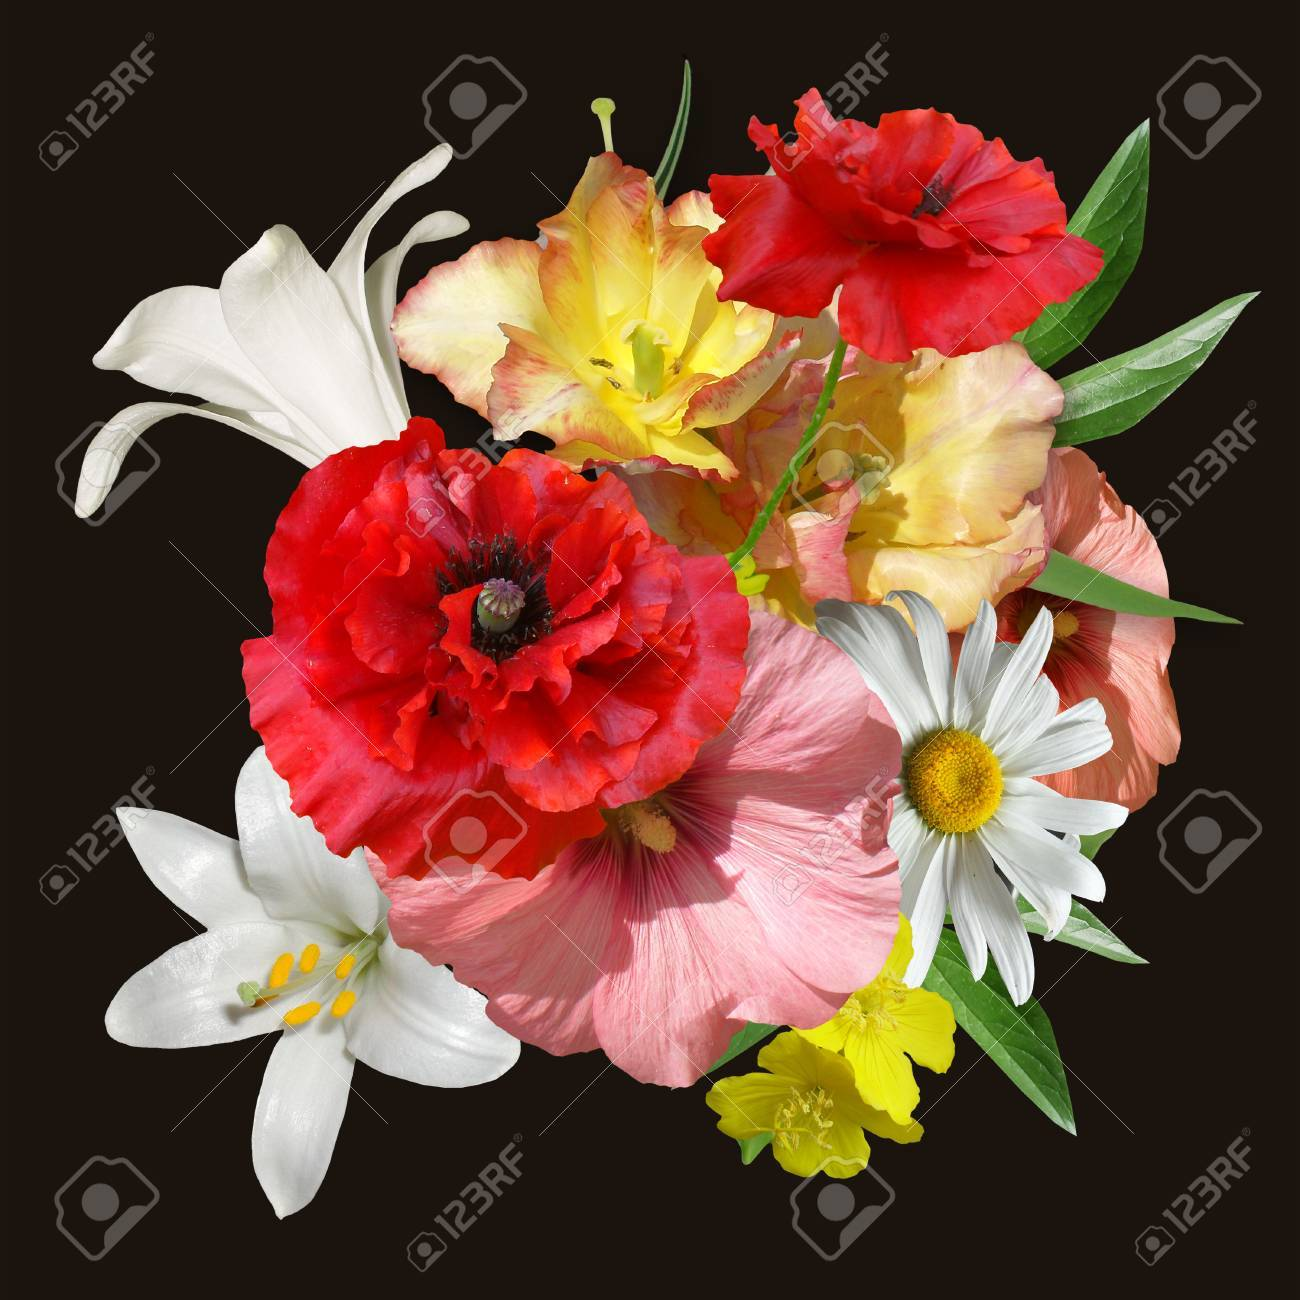 Floral Design Bouquet Poppies Lilies On Black Stock Photo Picture